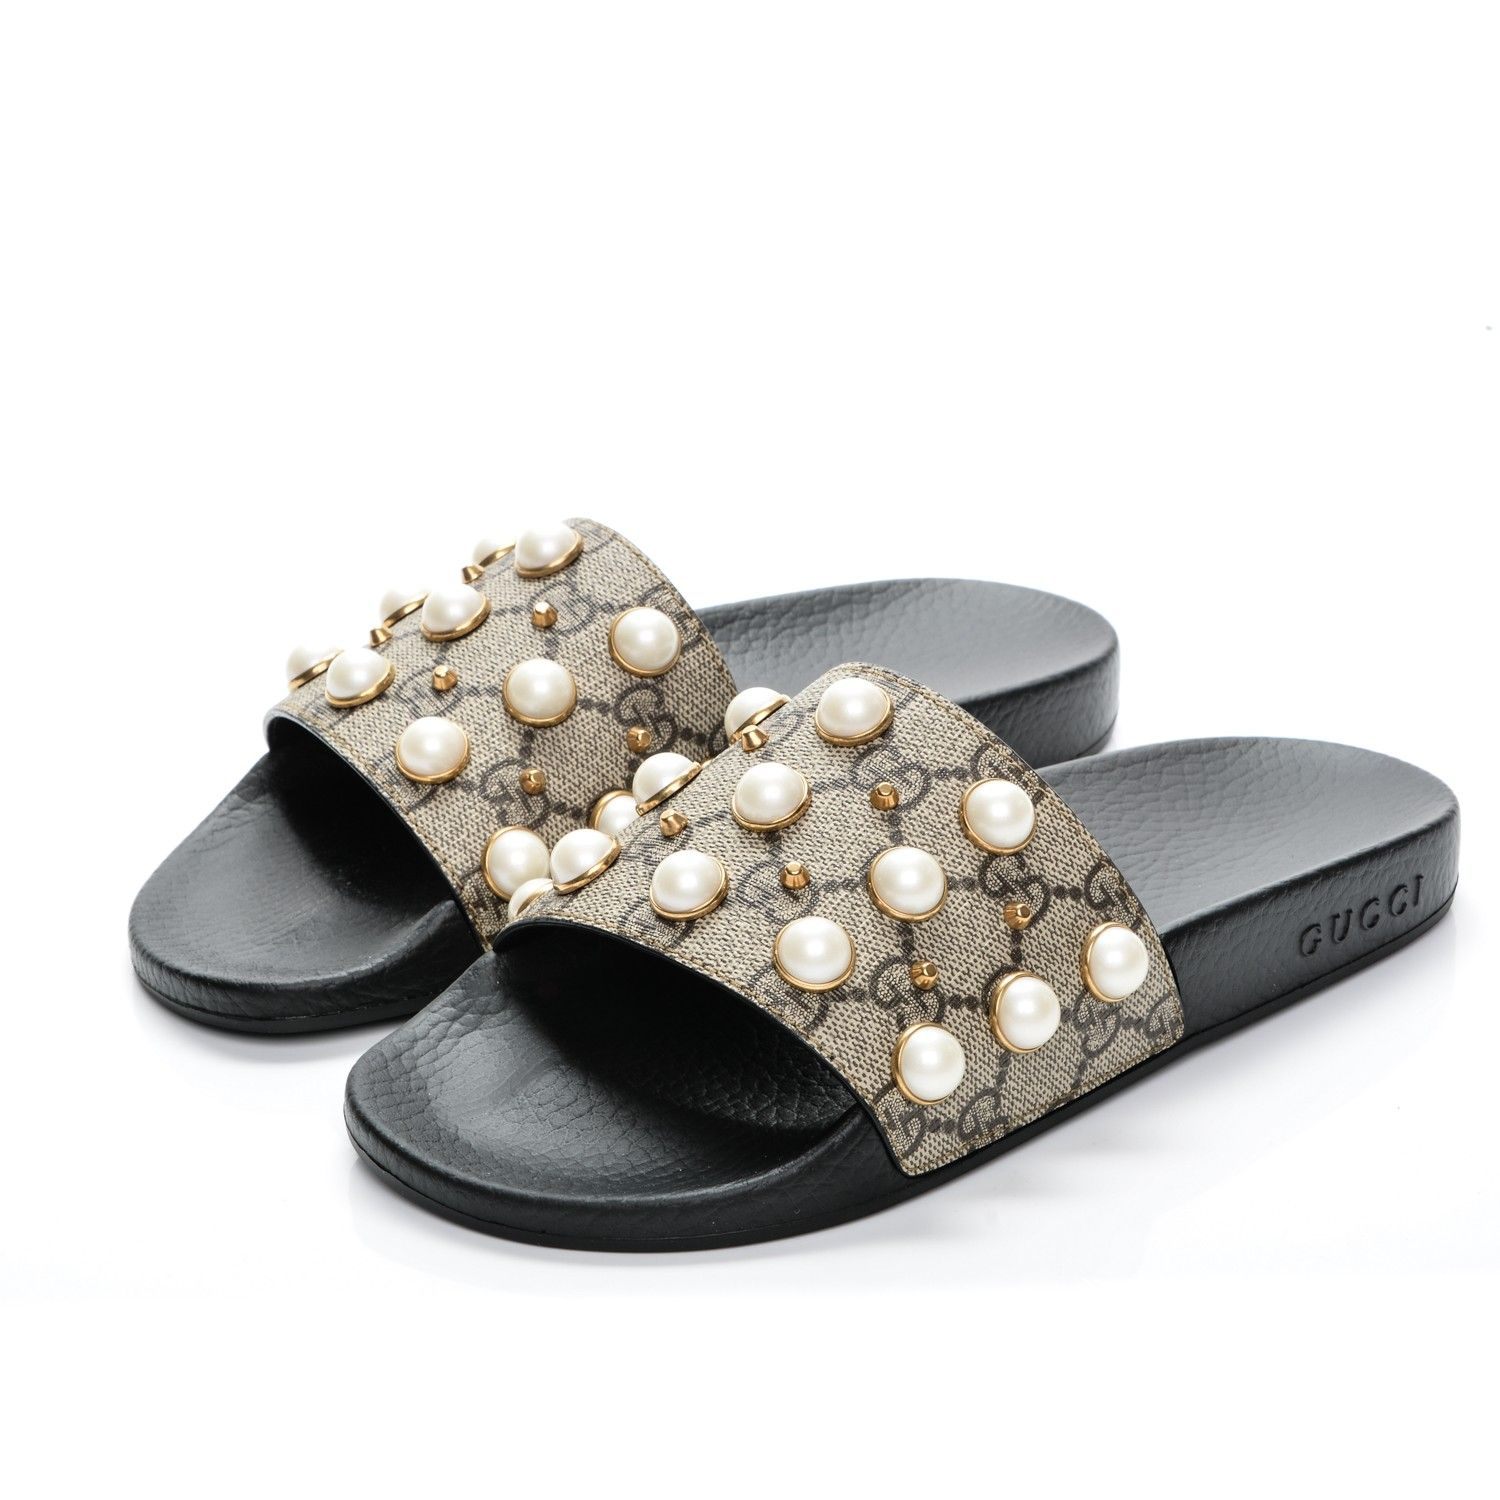 cde9e6d785fb This is an authentic pair of GUCCI GG Supreme Monogram Slide Pearls Sandals  in size 37